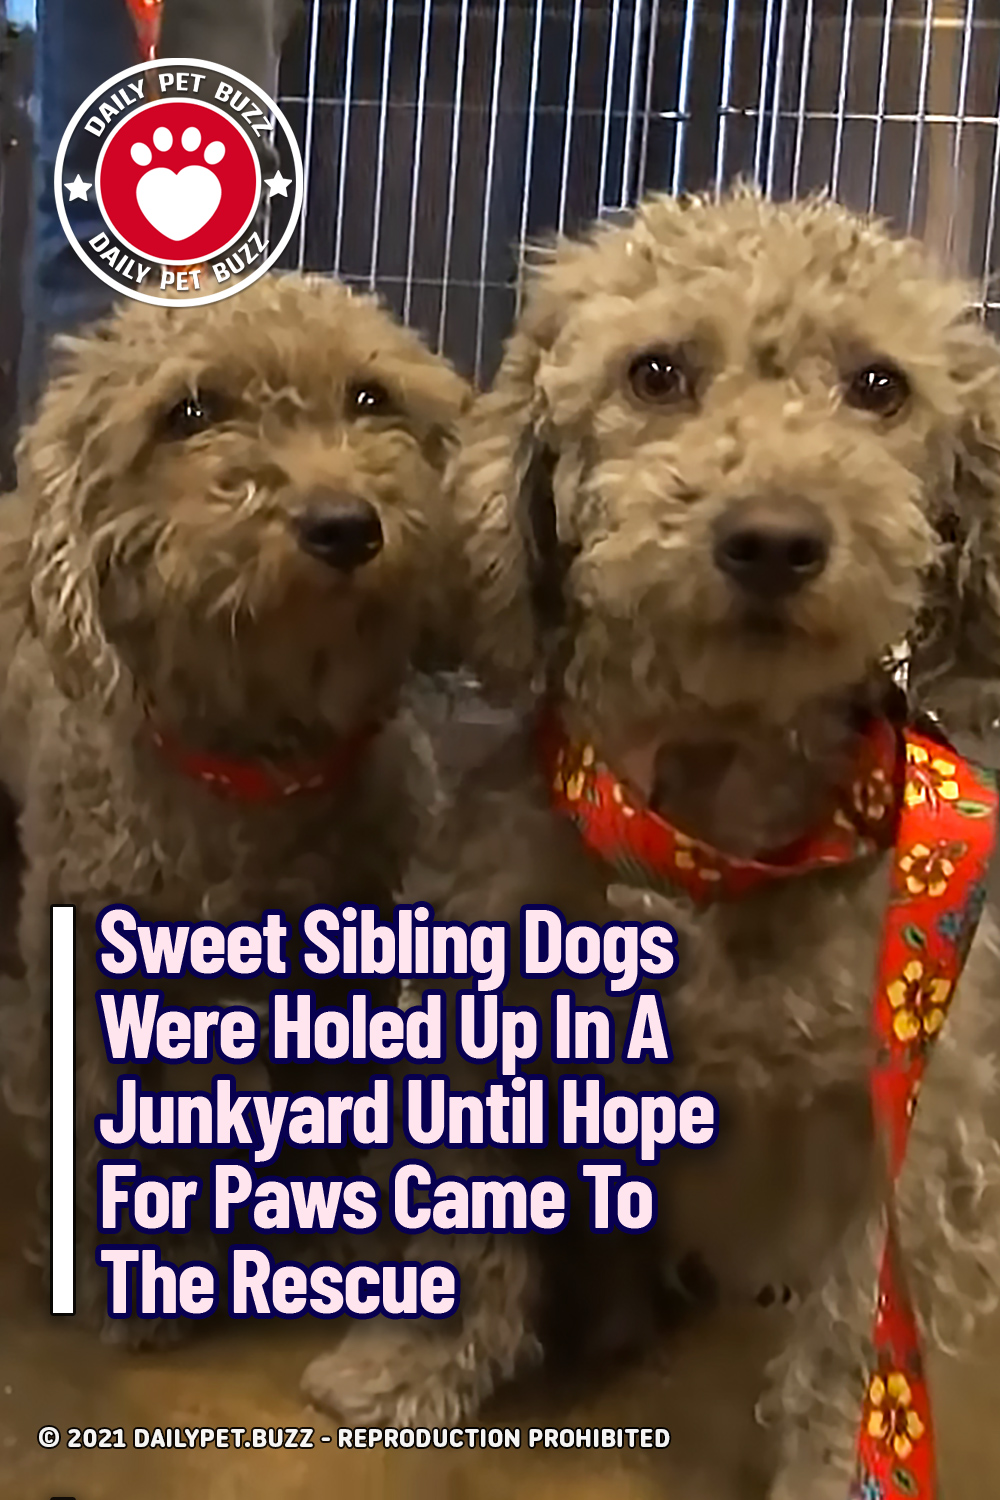 Sweet Sibling Dogs Were Holed Up In A Junkyard Until Hope For Paws Came To The Rescue